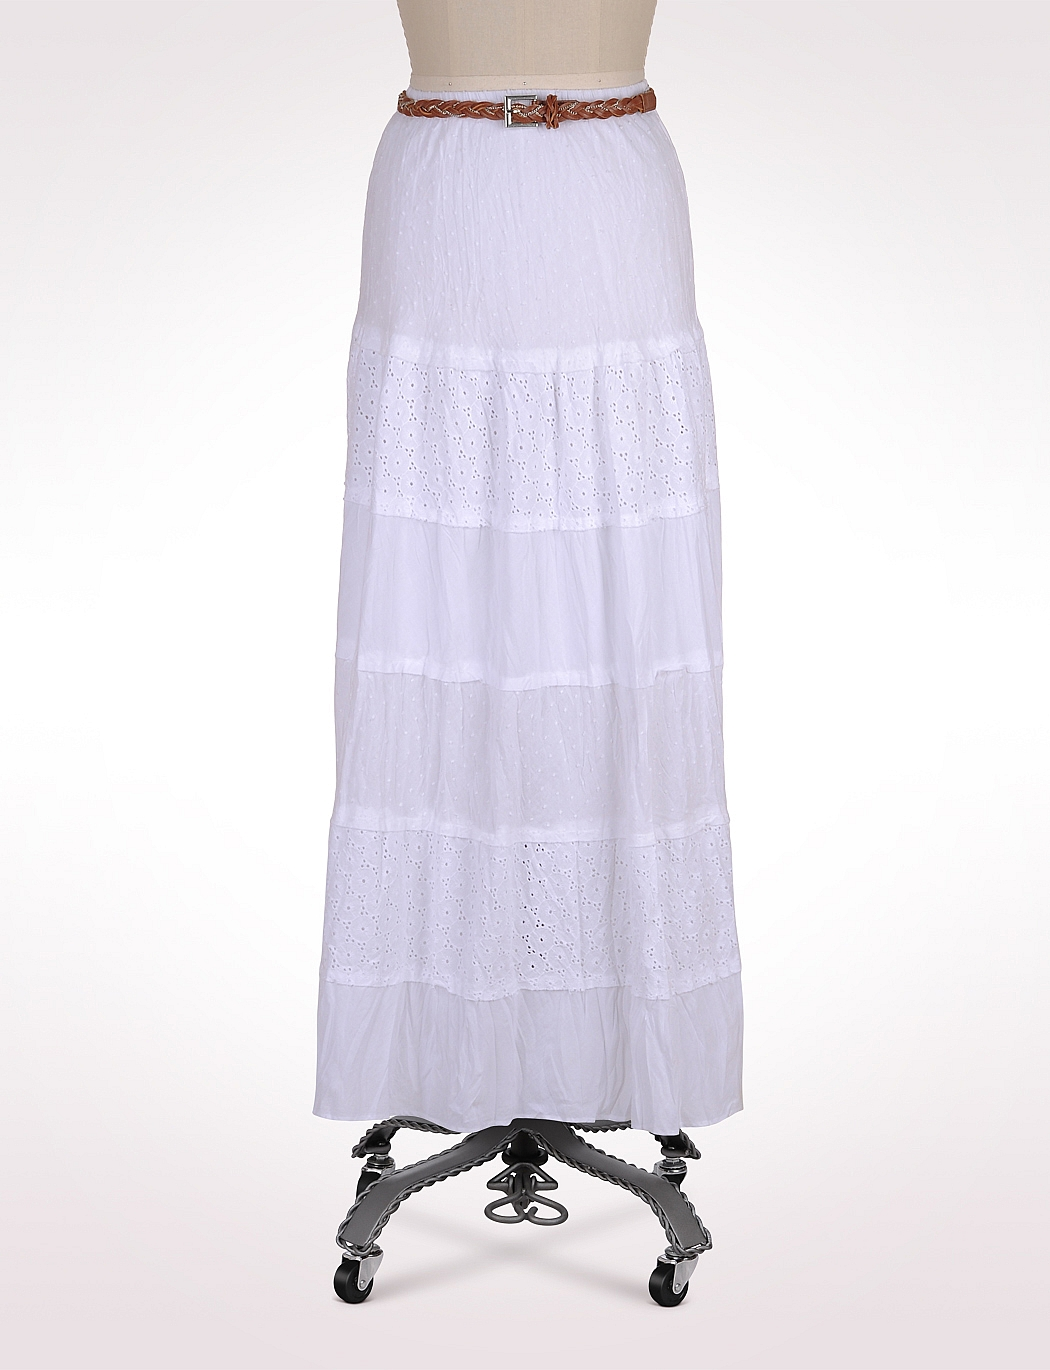 Tiered Eyelet Swiss Dot Maxi White Skirt | Clothing | White-Skirts ...